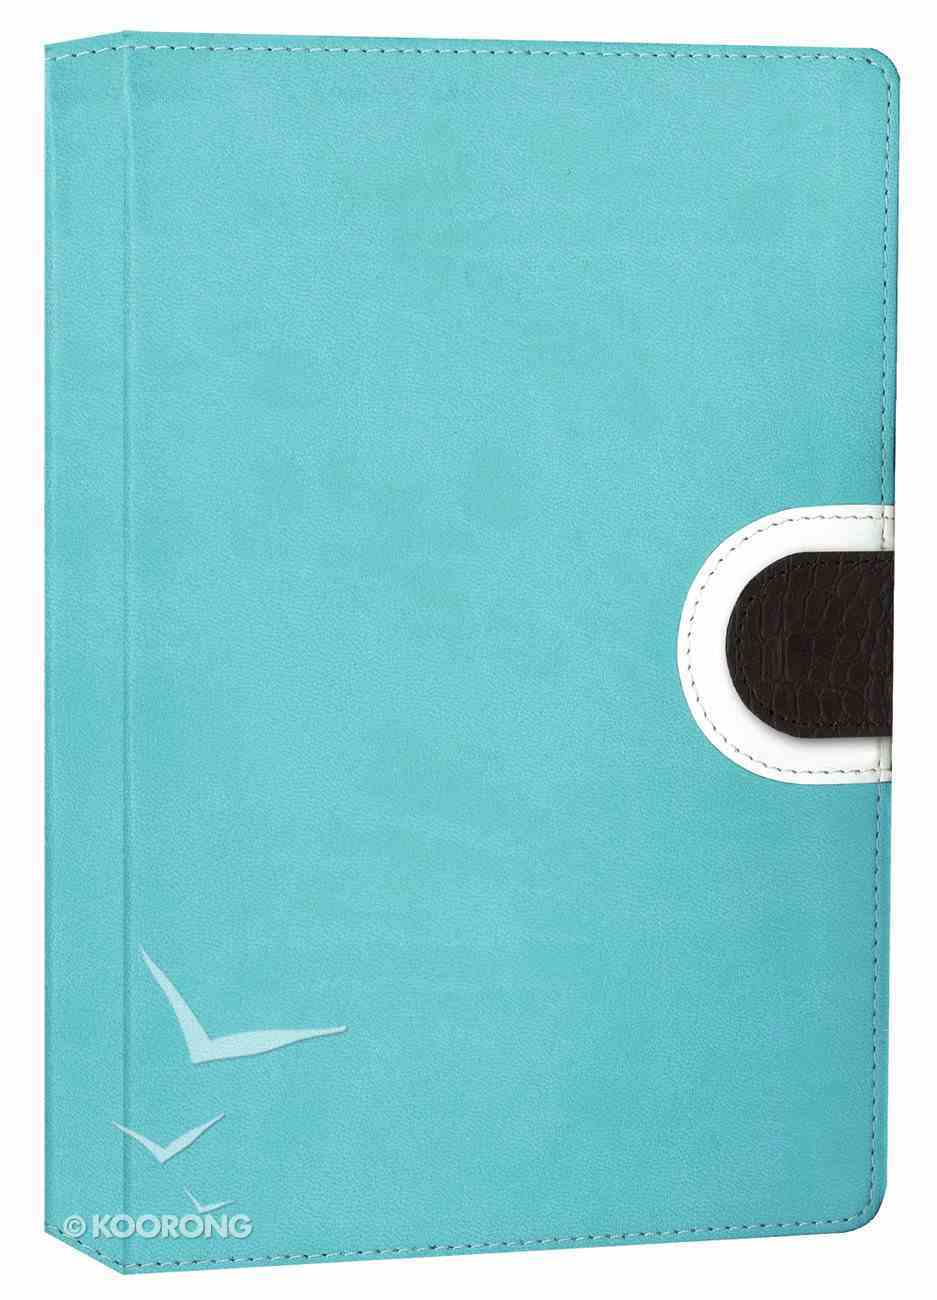 NIV Thinline Bible Turquoise Chocolate Duo-Tone (Red Letter Edition) Imitation Leather